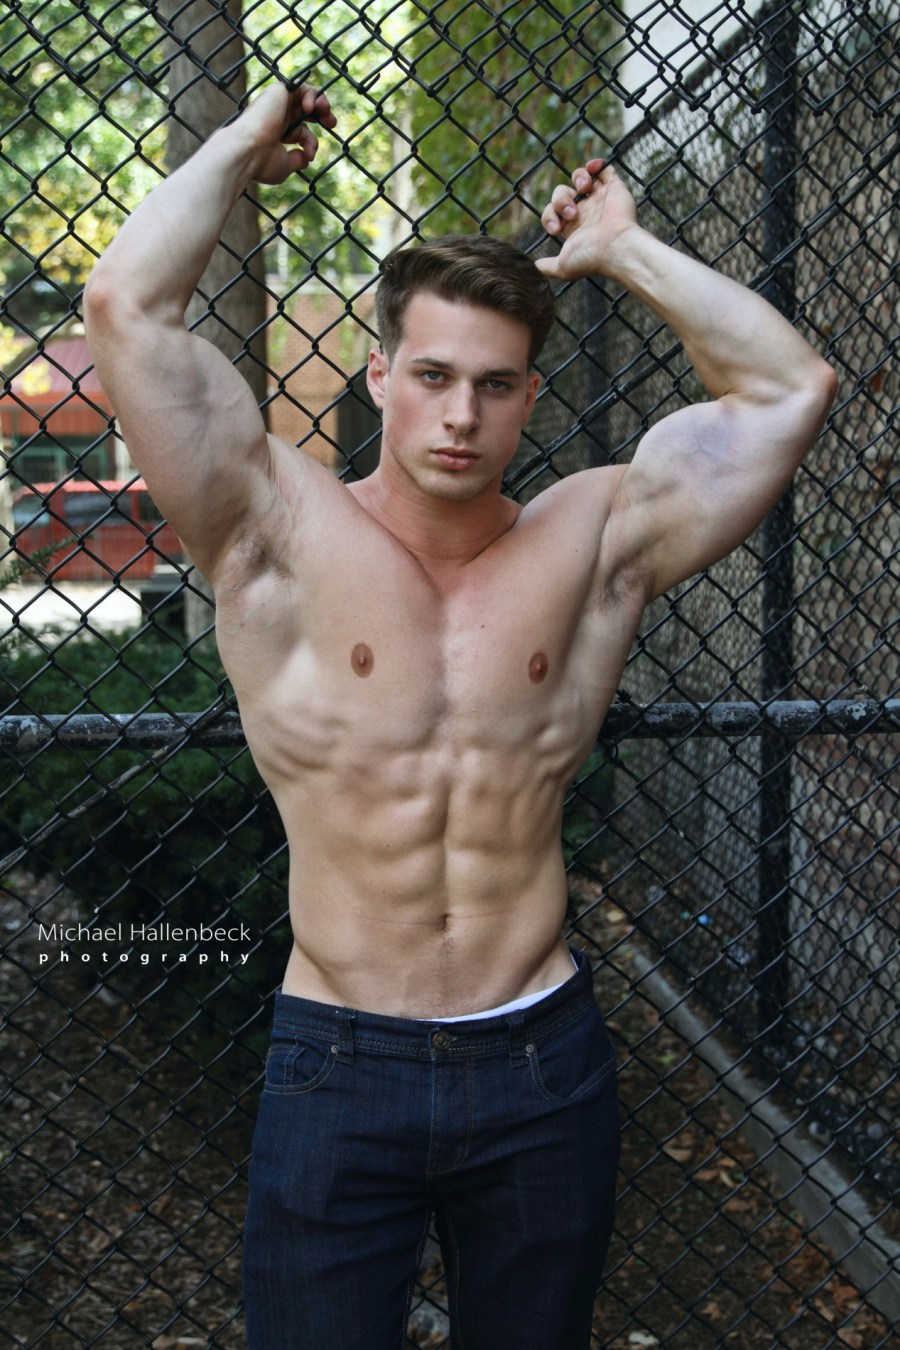 Everybody swoons over Nick Sandell. The muscle-bound hunk once again debuts a hot new shoot on Fashionably Male/PnV.